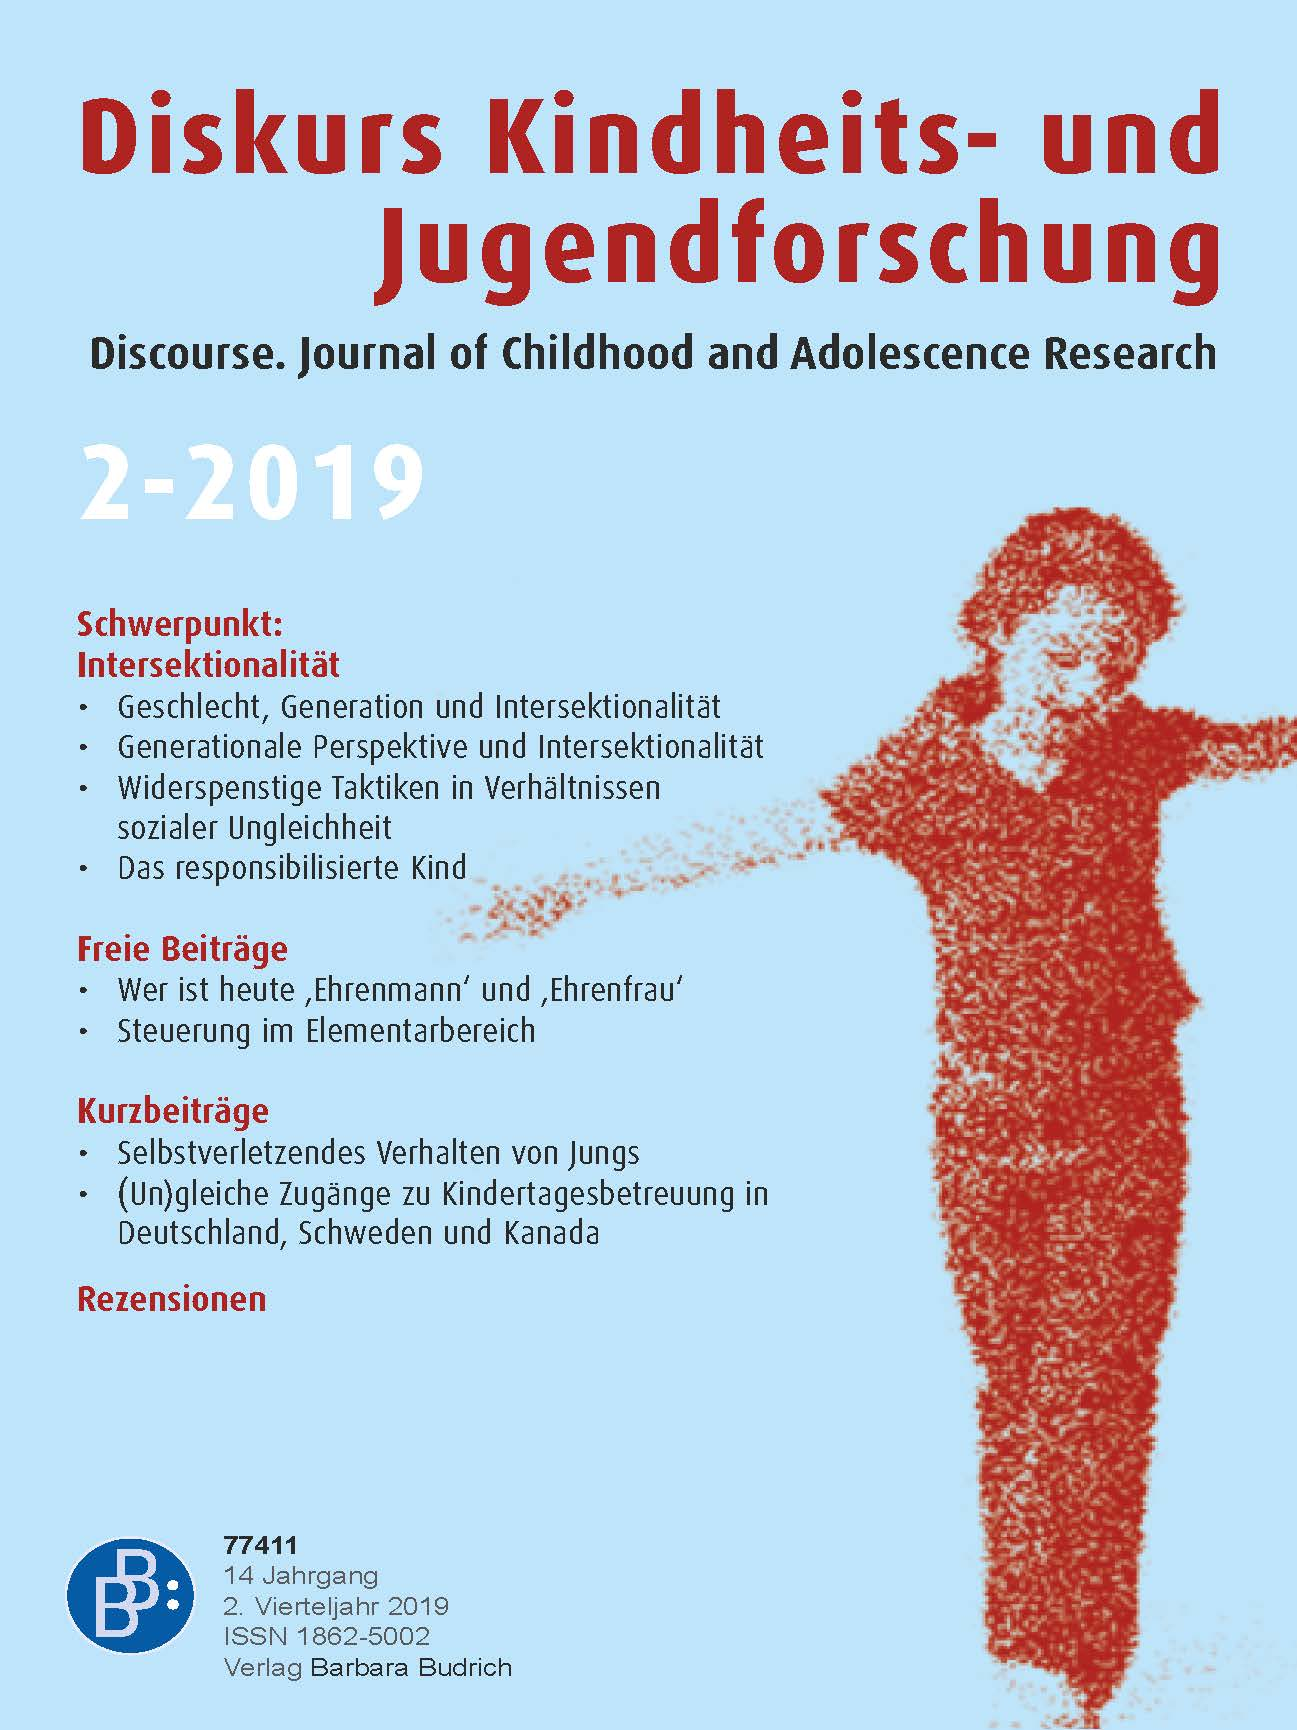 Diskurs Kindheits- und Jugendforschung | Discourse. Journal of Childhood and Adolescence Research